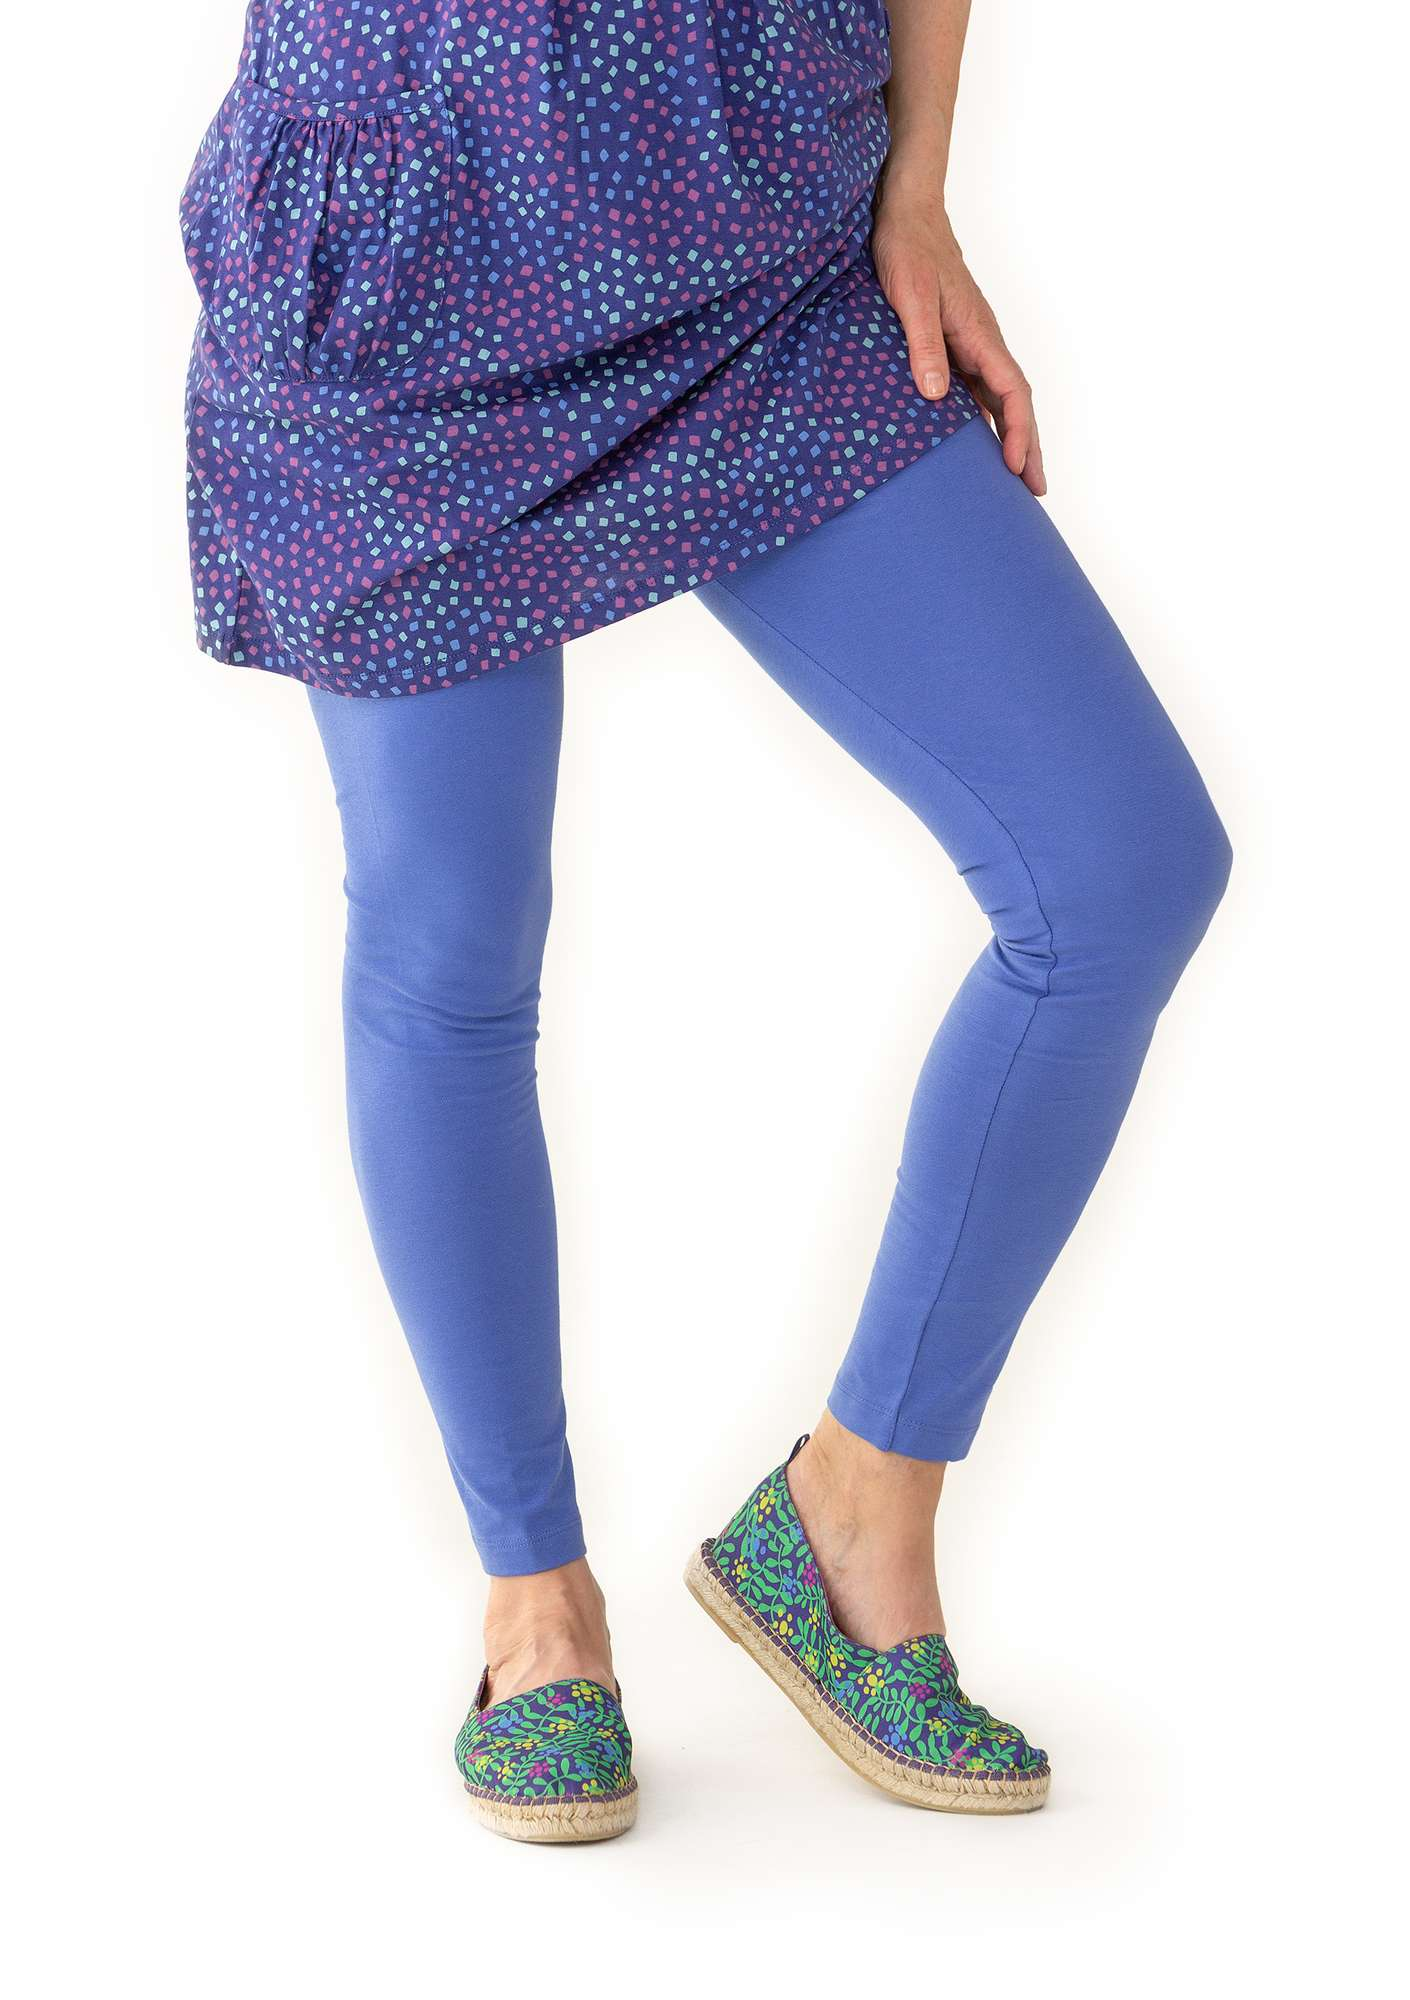 Leggings in organic cotton/spandex sky blue